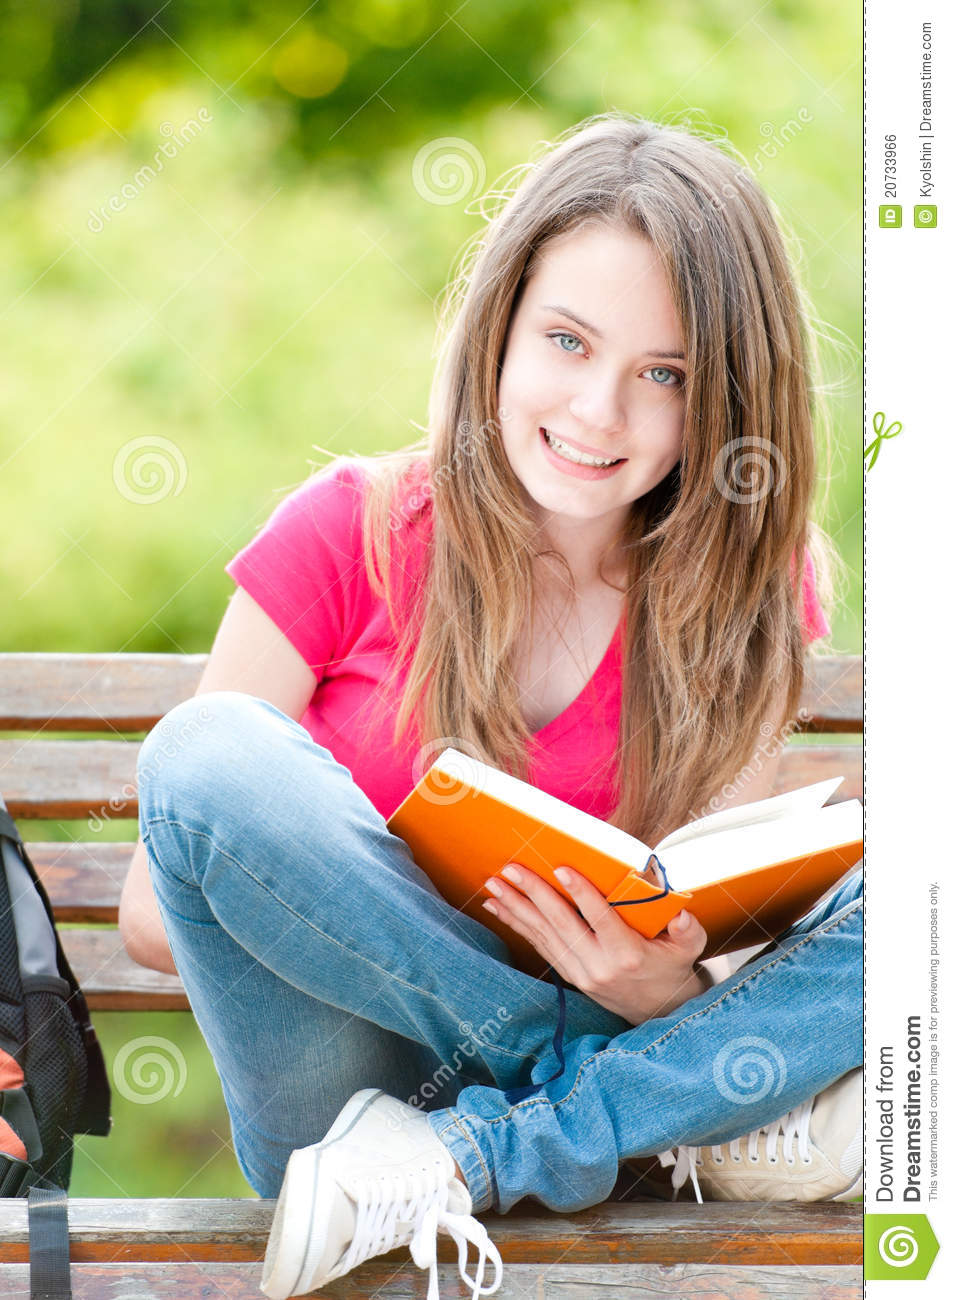 Happy Student Girl Sitting On Bench With Book Royalty Free